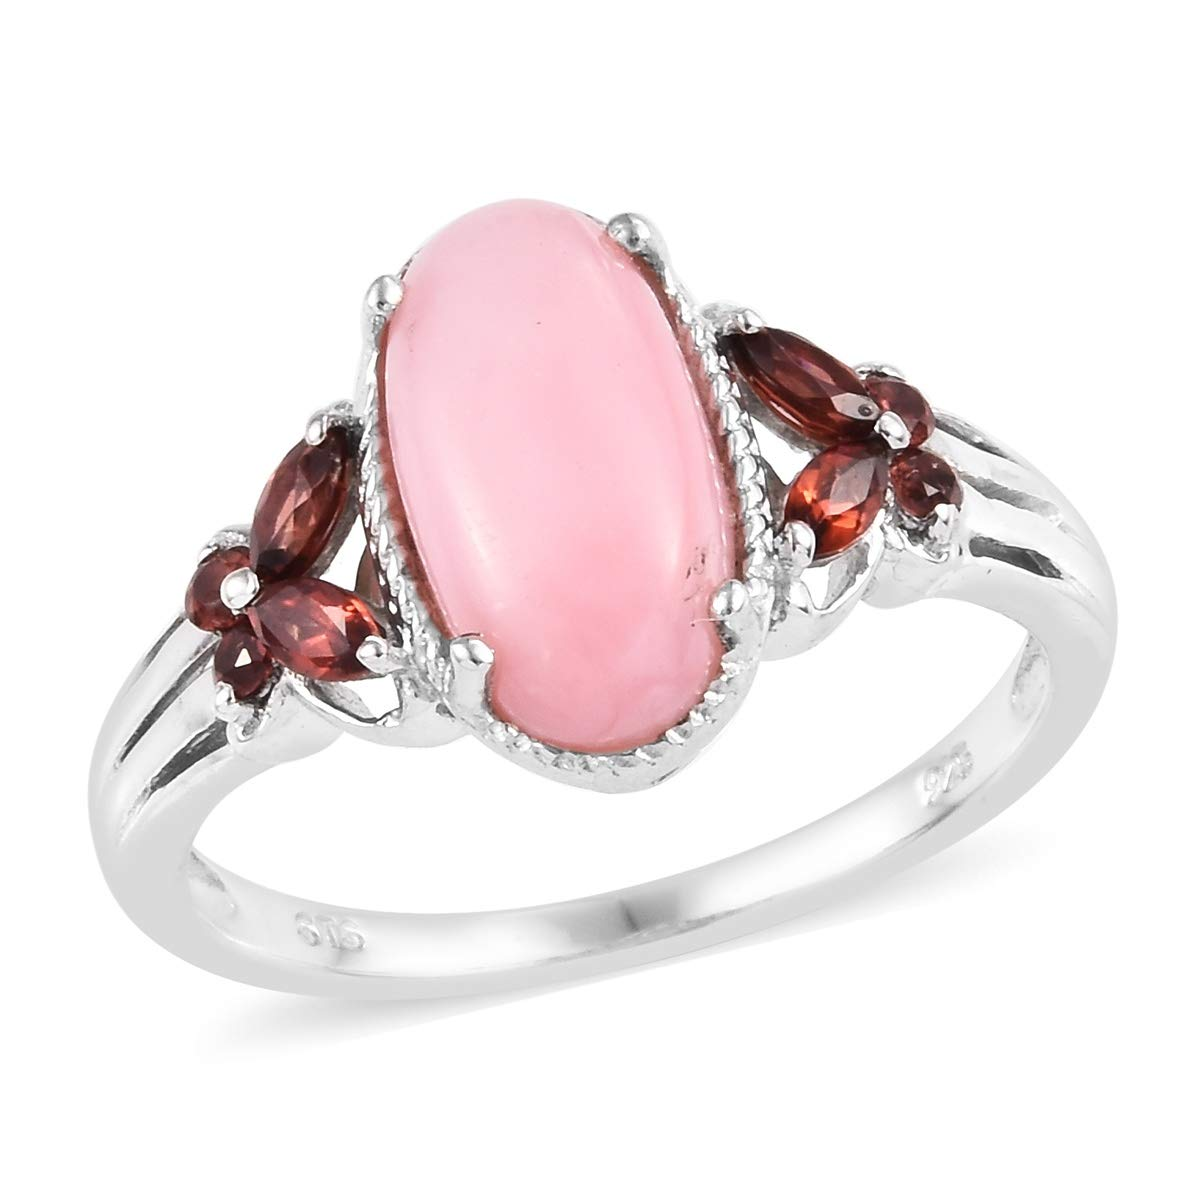 Pink Opal Garnet Ring 925 Sterling Silver Platinum Plated Jewelry for Women Size 8